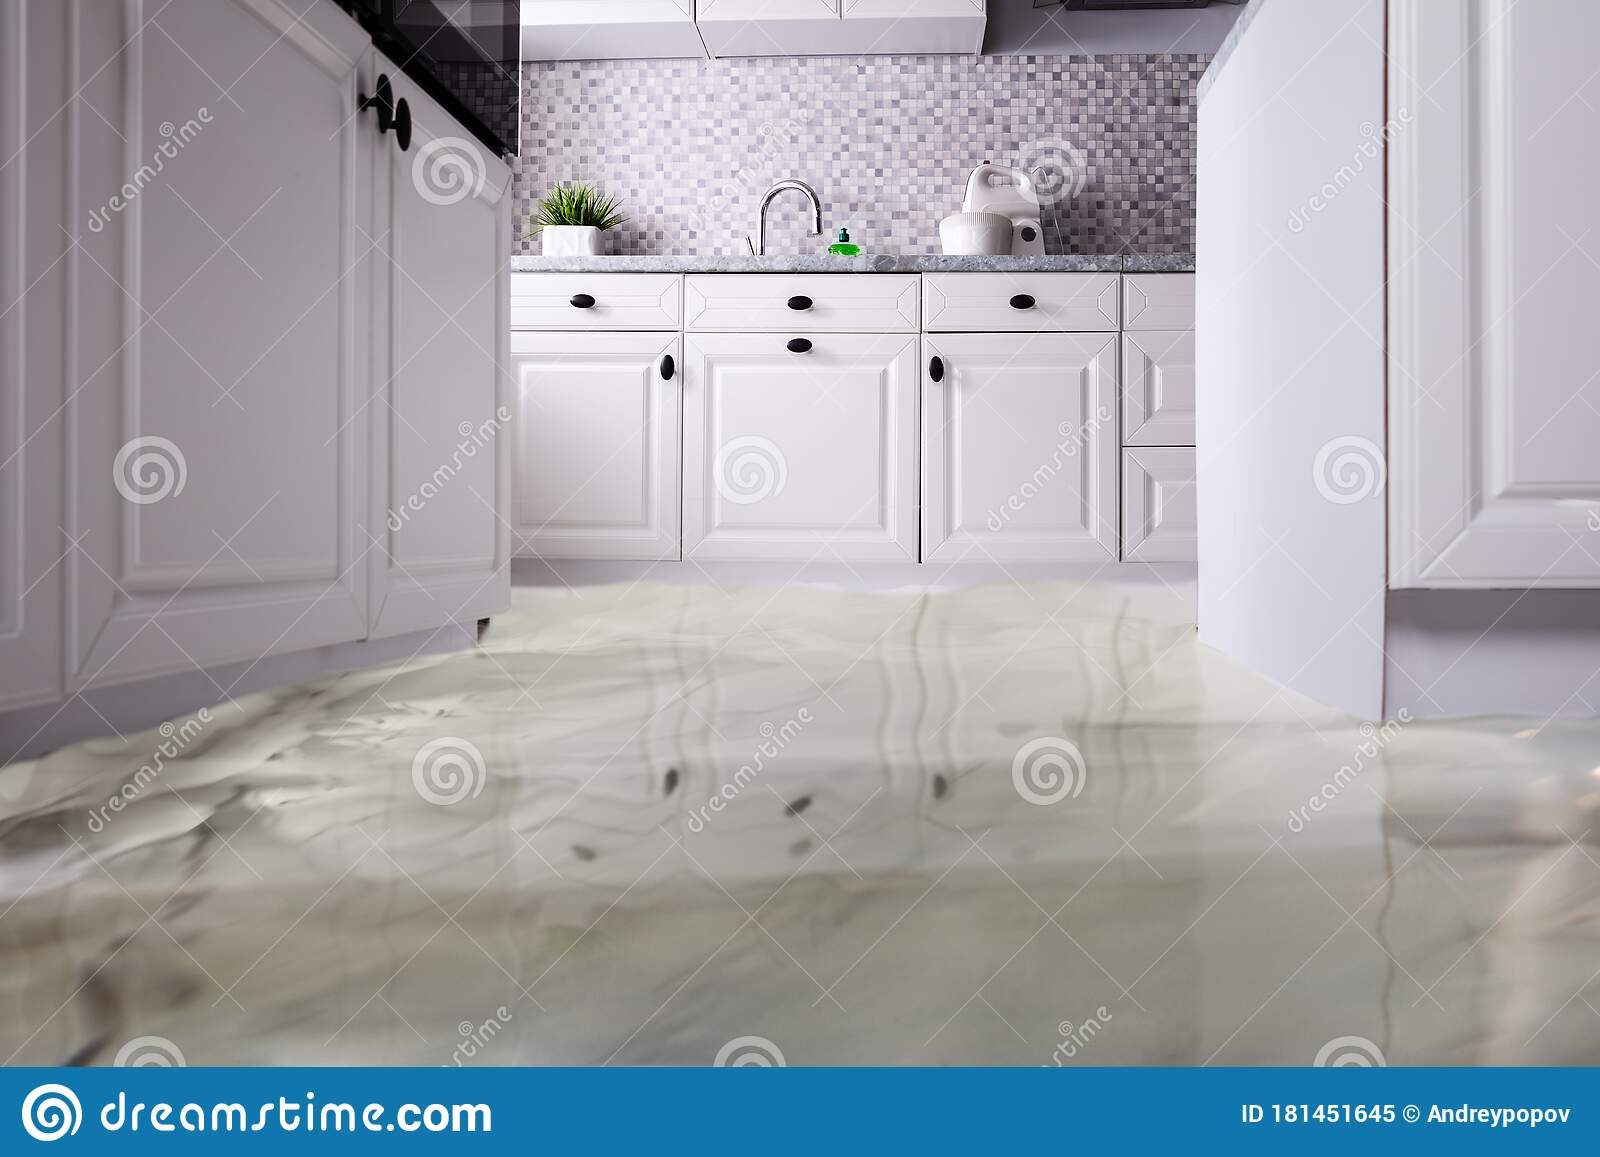 9 Flooded Kitchen Photos   Free & Royalty Free Stock Photos from ...